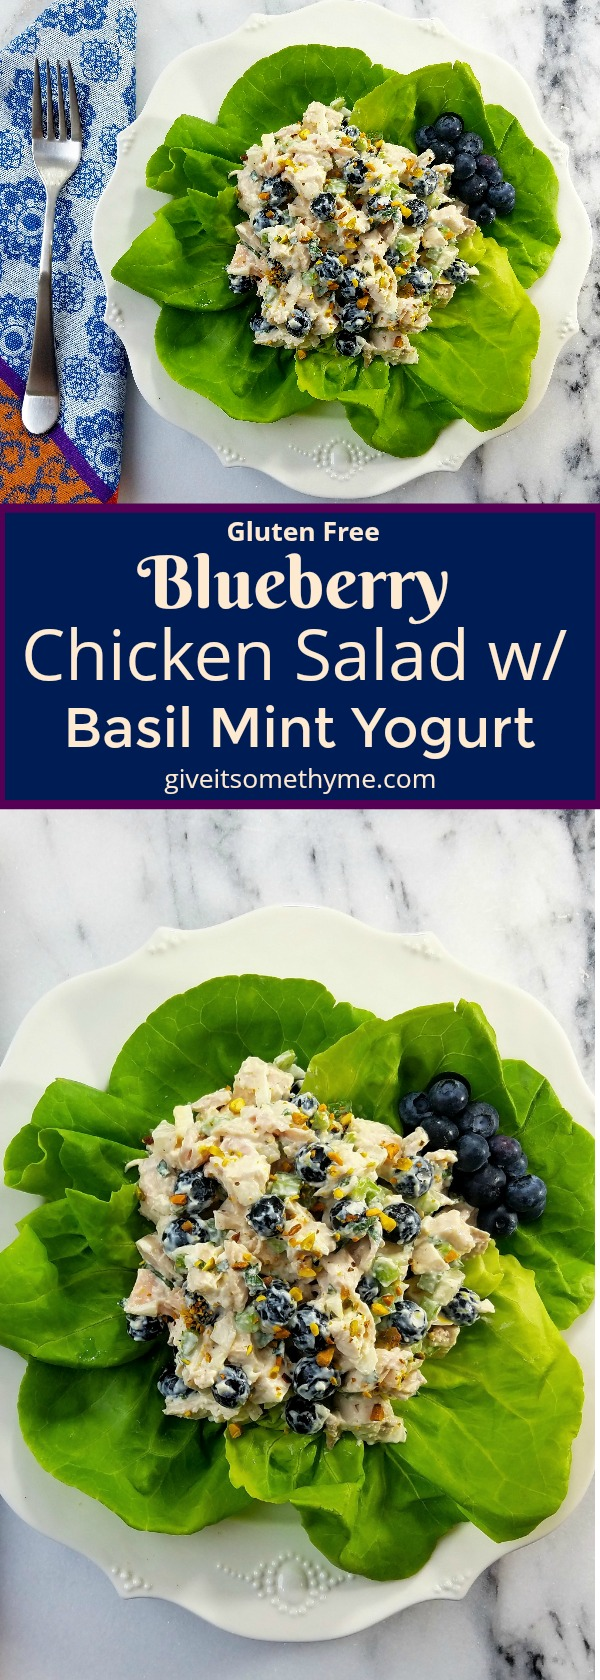 Blueberry Chicken Salad w/ Basil Mint Yogurt Dressing | Give it Some Thyme